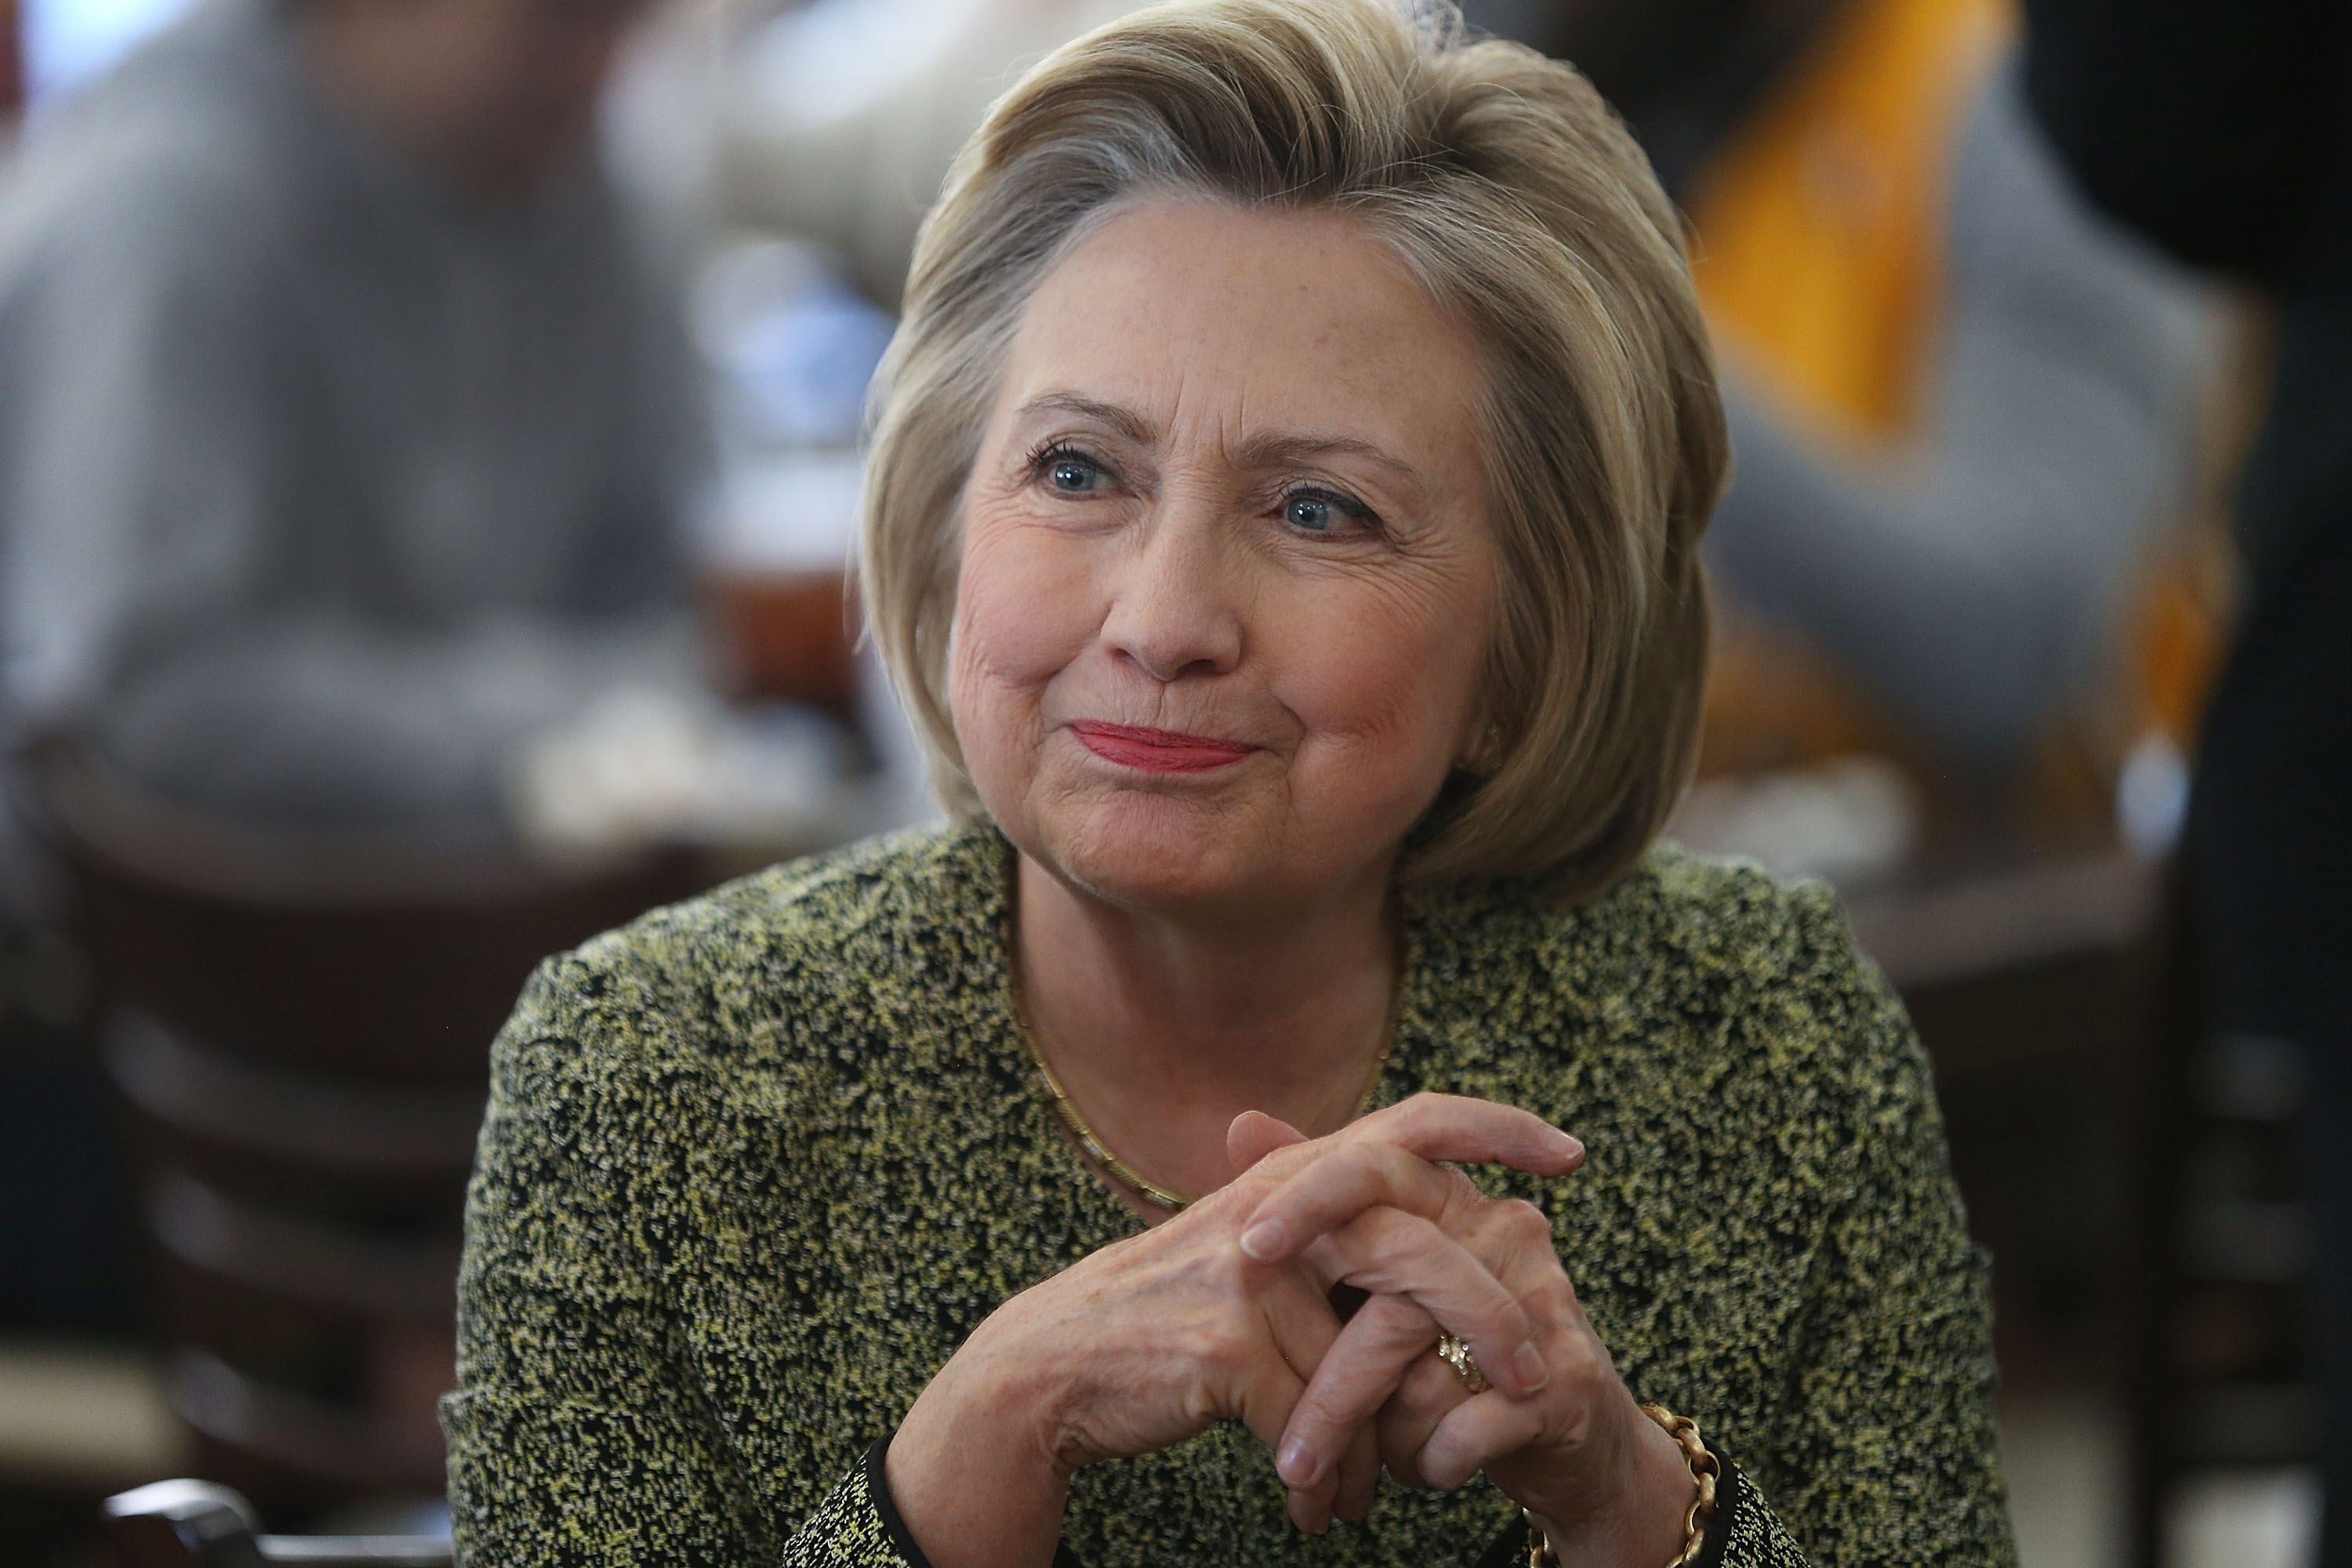 INDIANAPOLIS, IN - MAY 01: Democratic presidential candidate Hillary Clinton makes a stop at the Lincoln Square pancake house as she campaigns for votes on May 1, 2016 in Indianapolis, Indiana. Presidential candidates continue to campaign across the state leading up to Indiana's primary day on May 3.